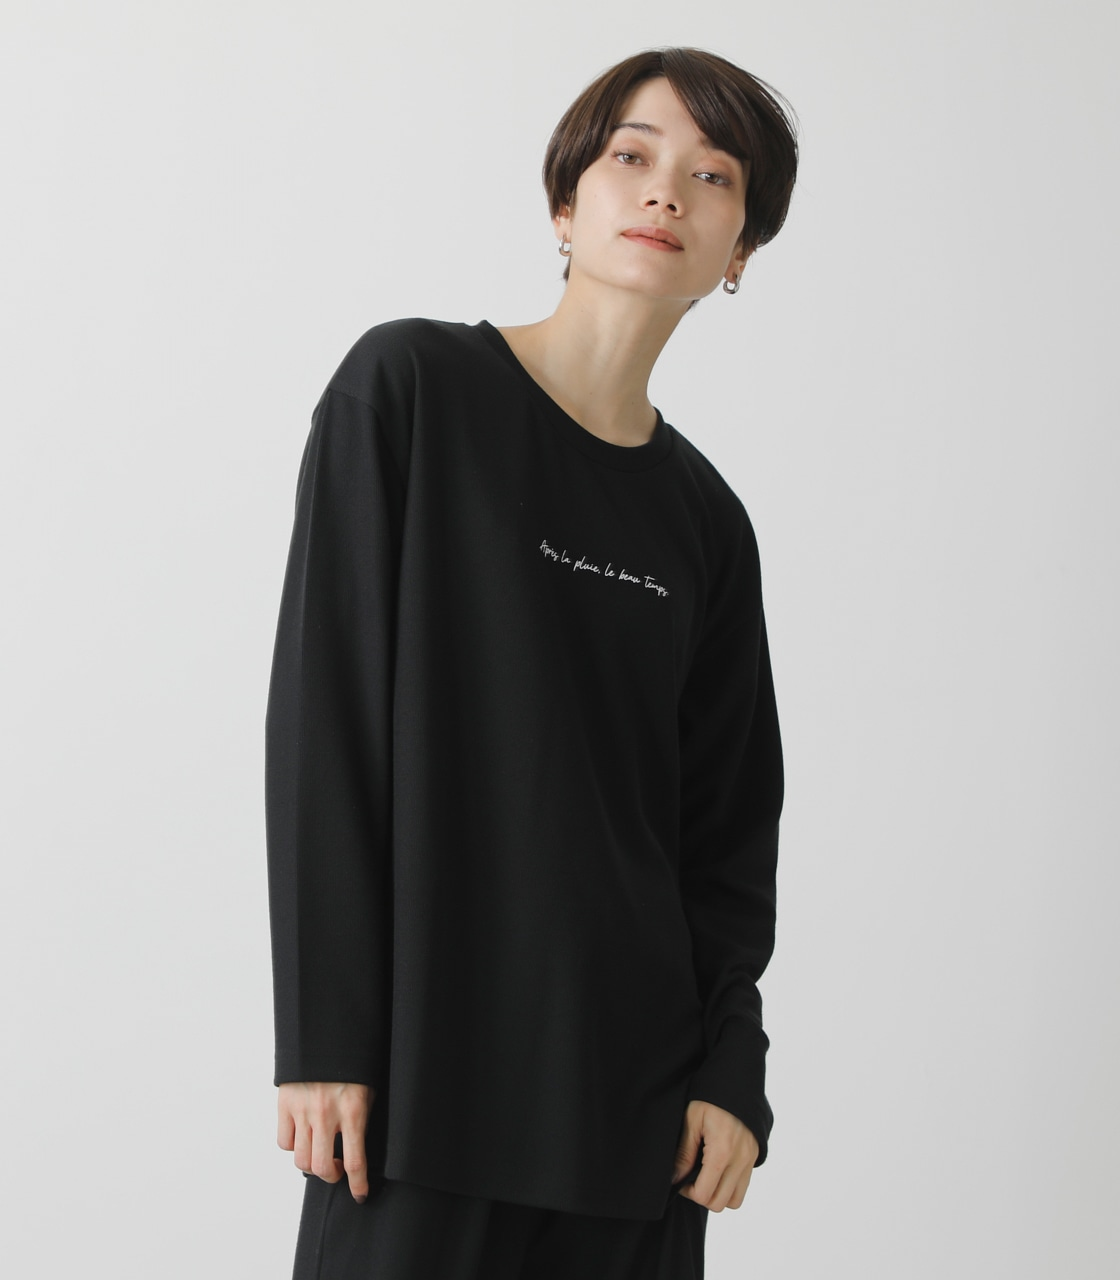 T/H PRINT LONG TEE/T/HプリントロングTシャツ 詳細画像 BLK 1